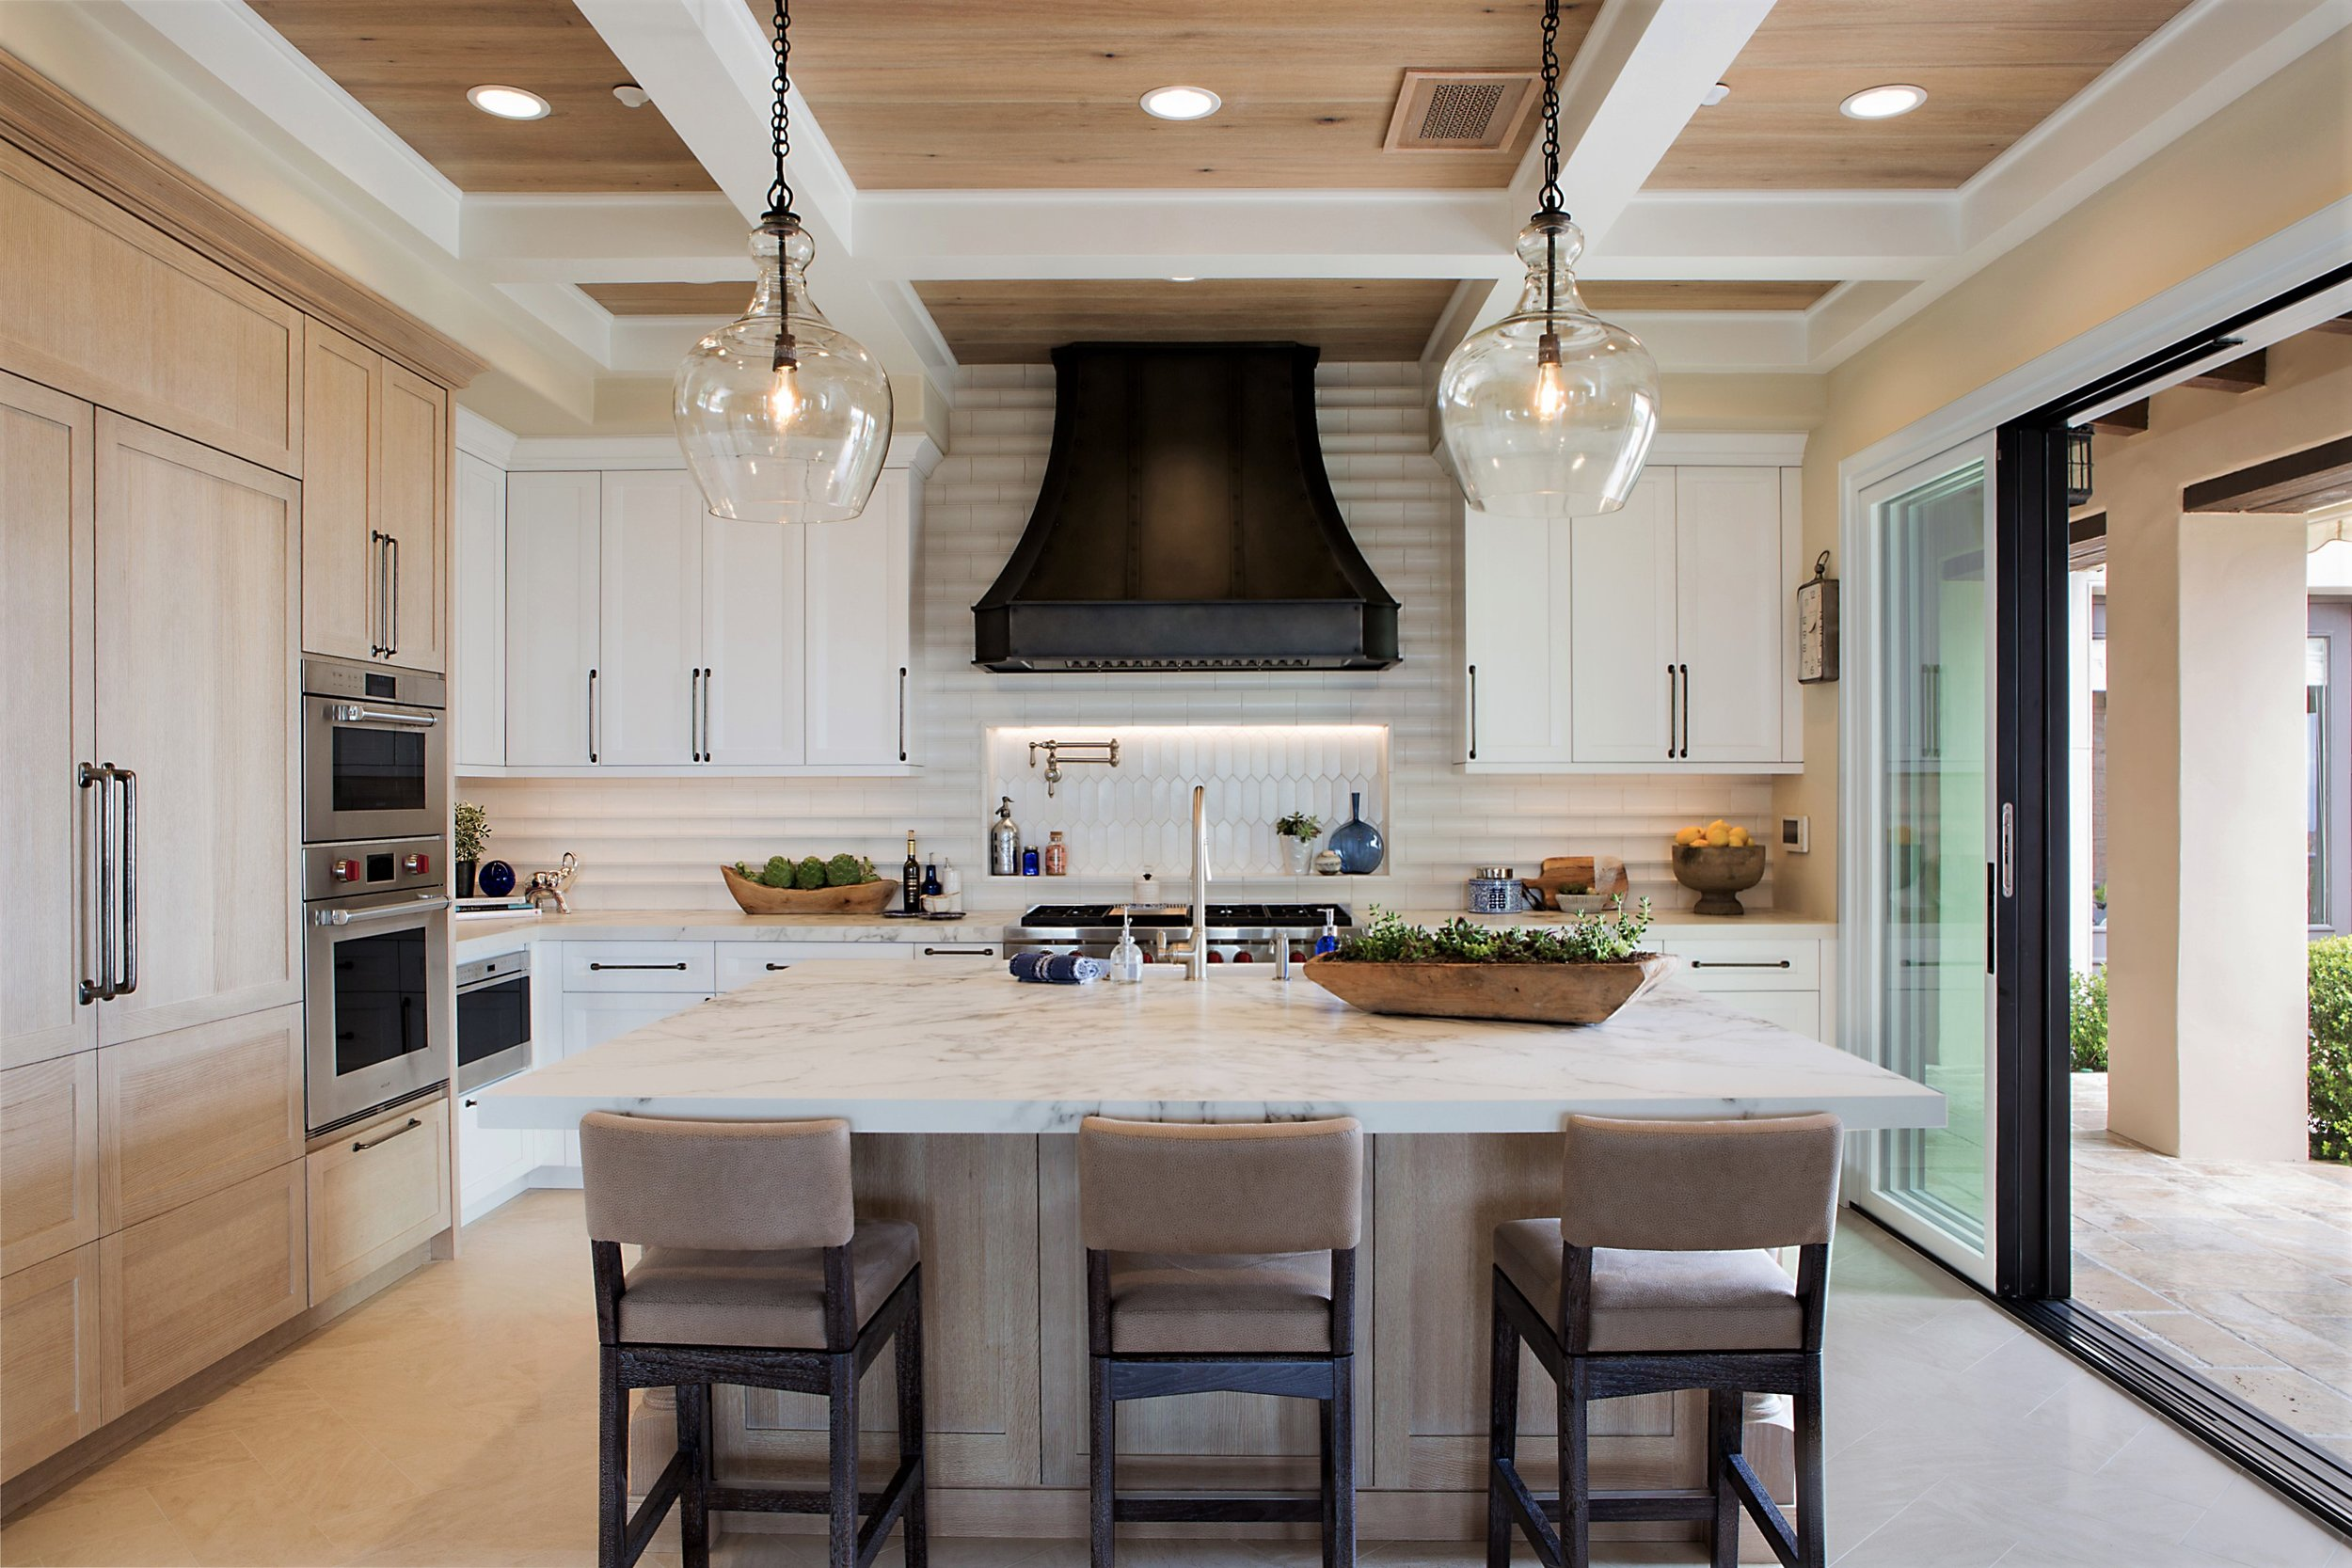 High Style Luxury Detailing For A High End Kitchen Remodel Signature Designs Kitchen Bath